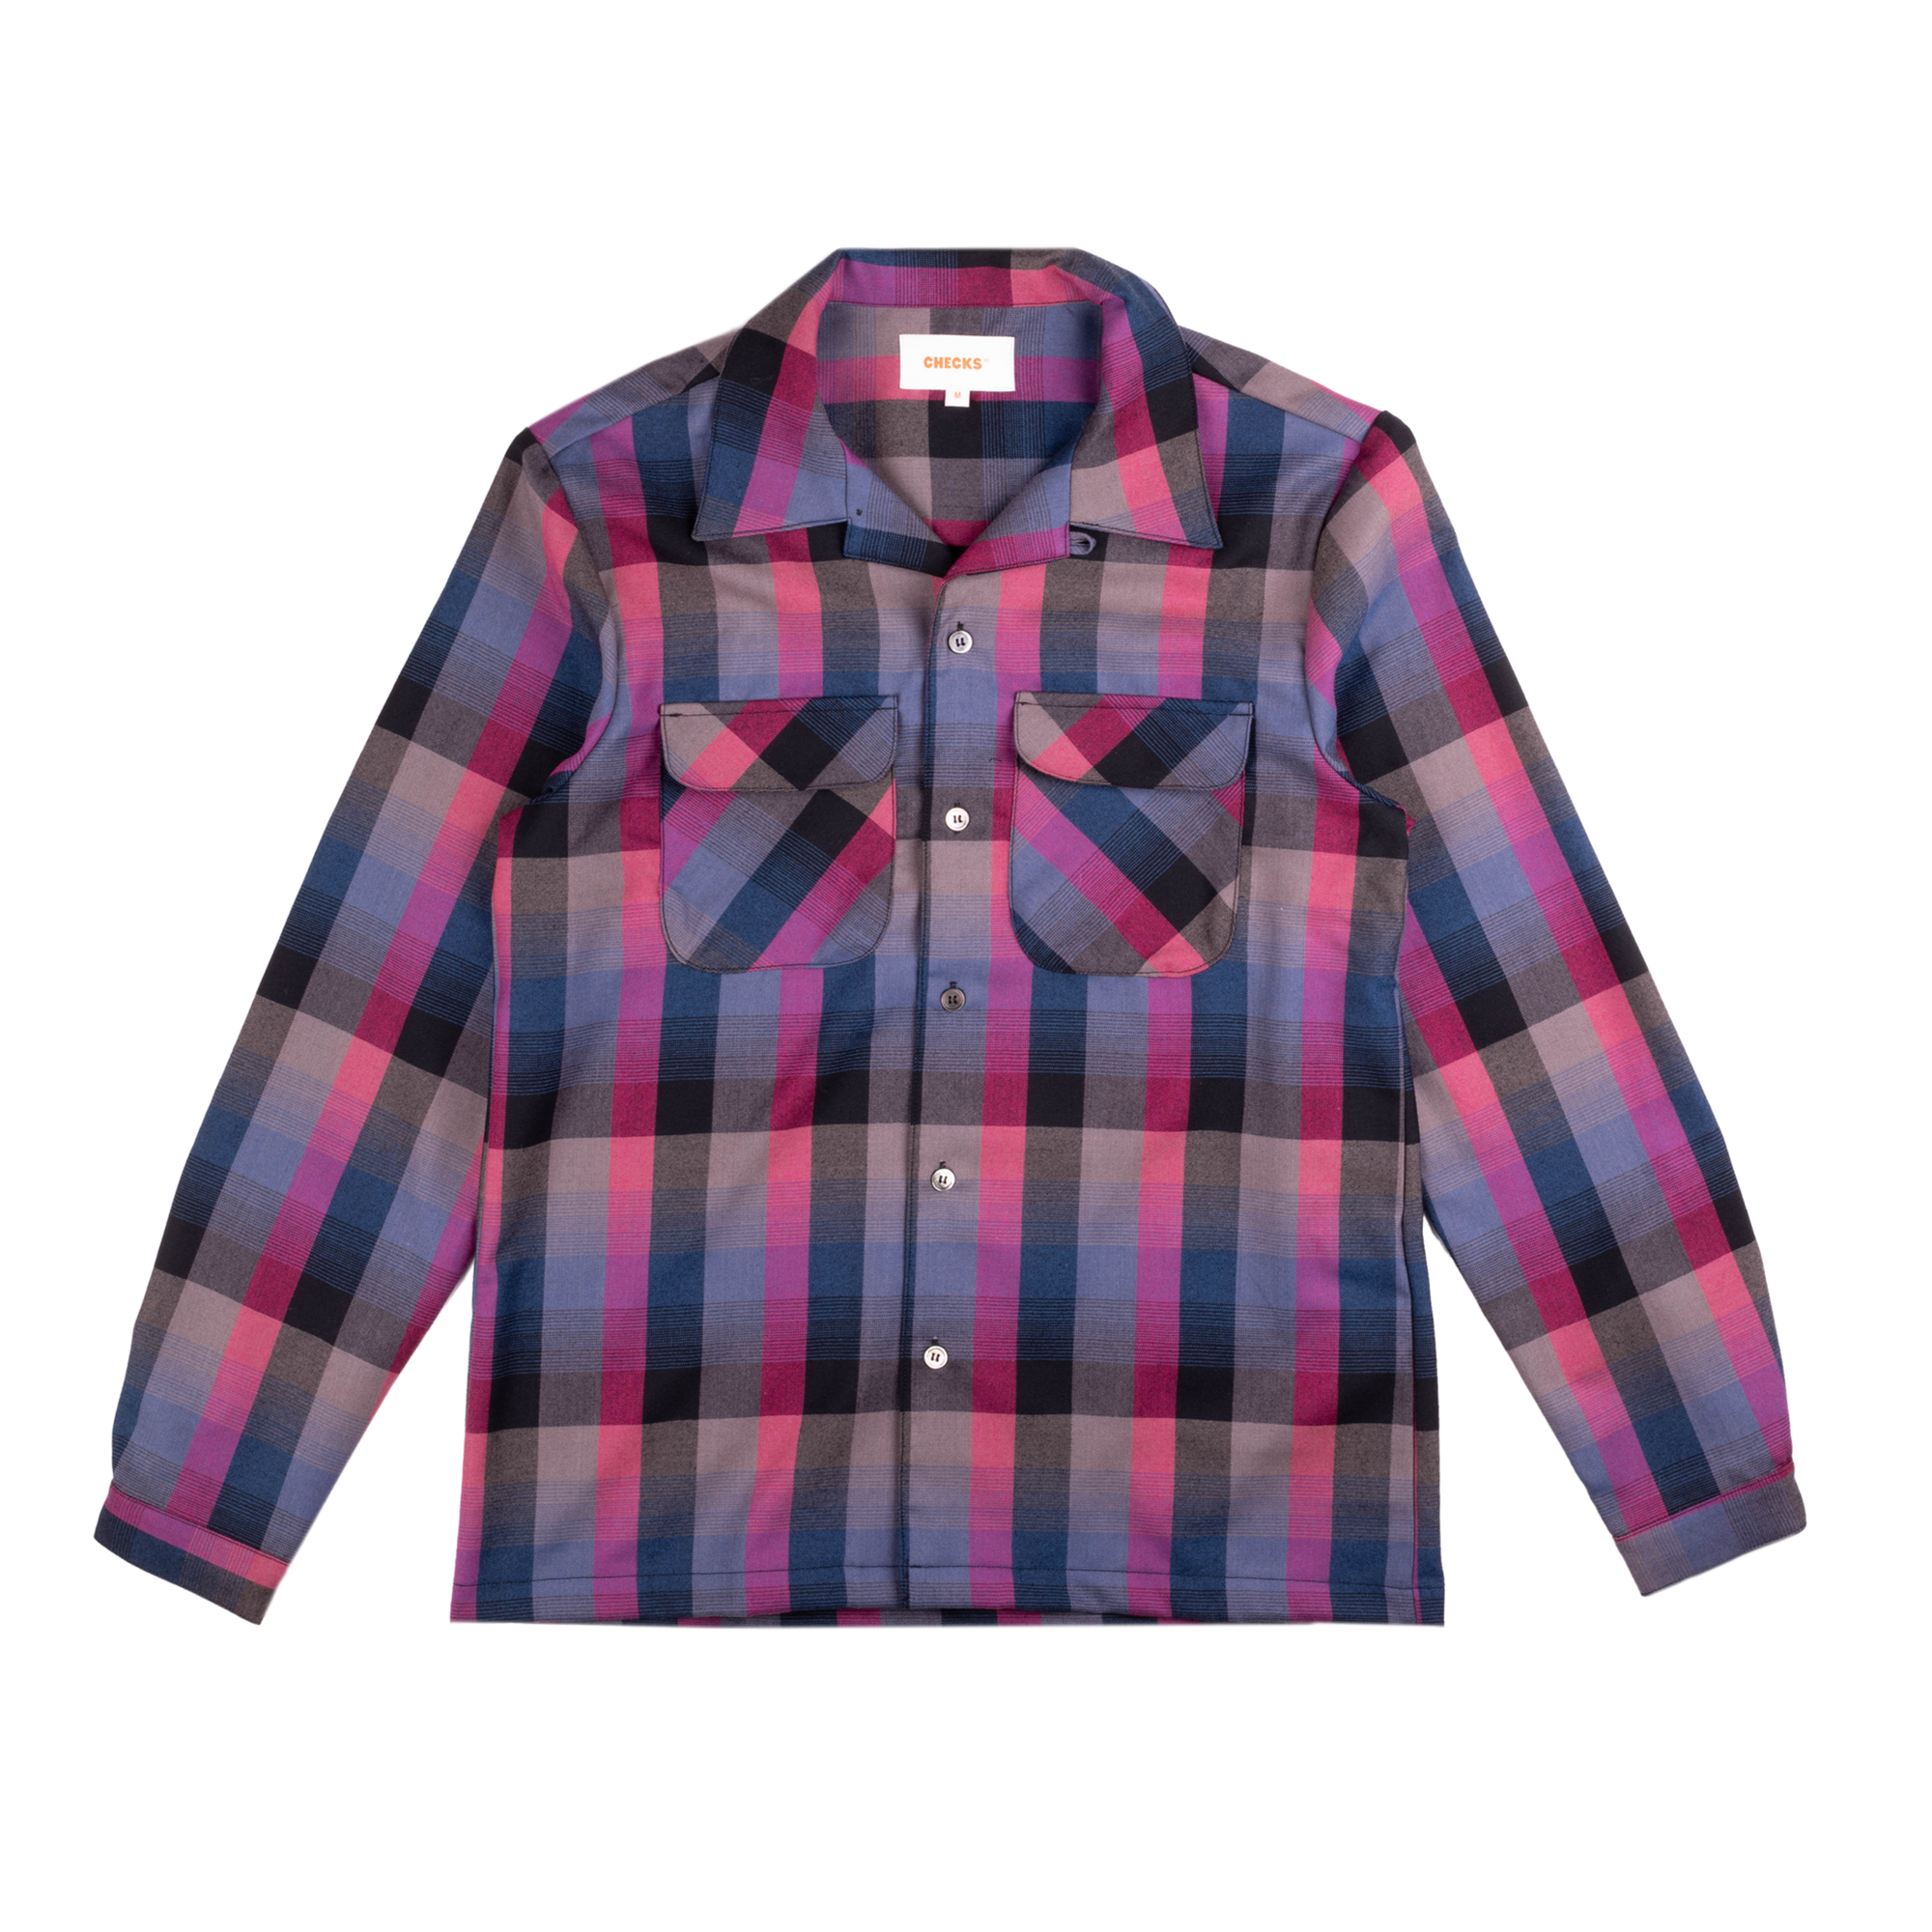 Load image into Gallery viewer, Rockabilly Shirt Grape Plaid | CHECKS DOWNTOWN  Edit alt text